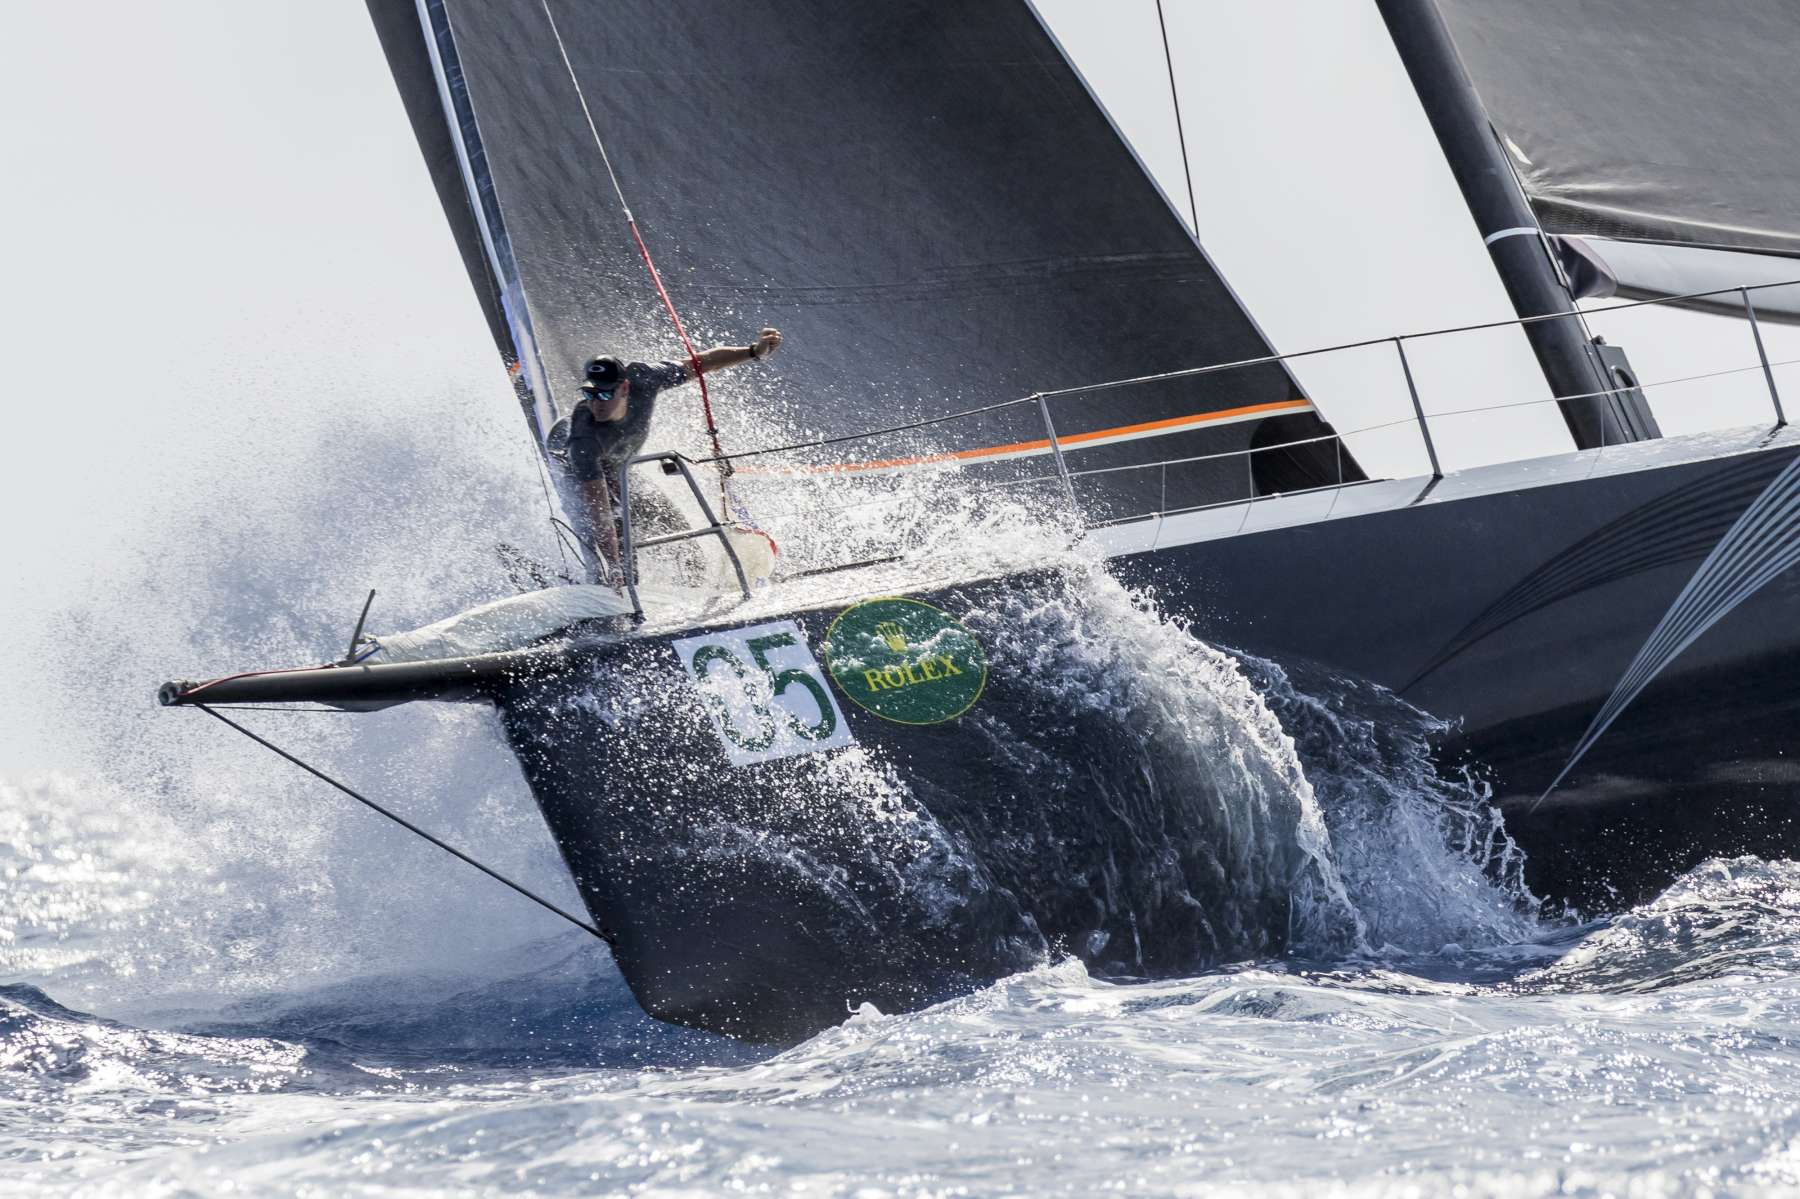 Maxi Yacht Rolex Cup & Rolex Maxi 72 Worlds - Images race Day 4 online - NEWS - Yacht Club Costa Smeralda